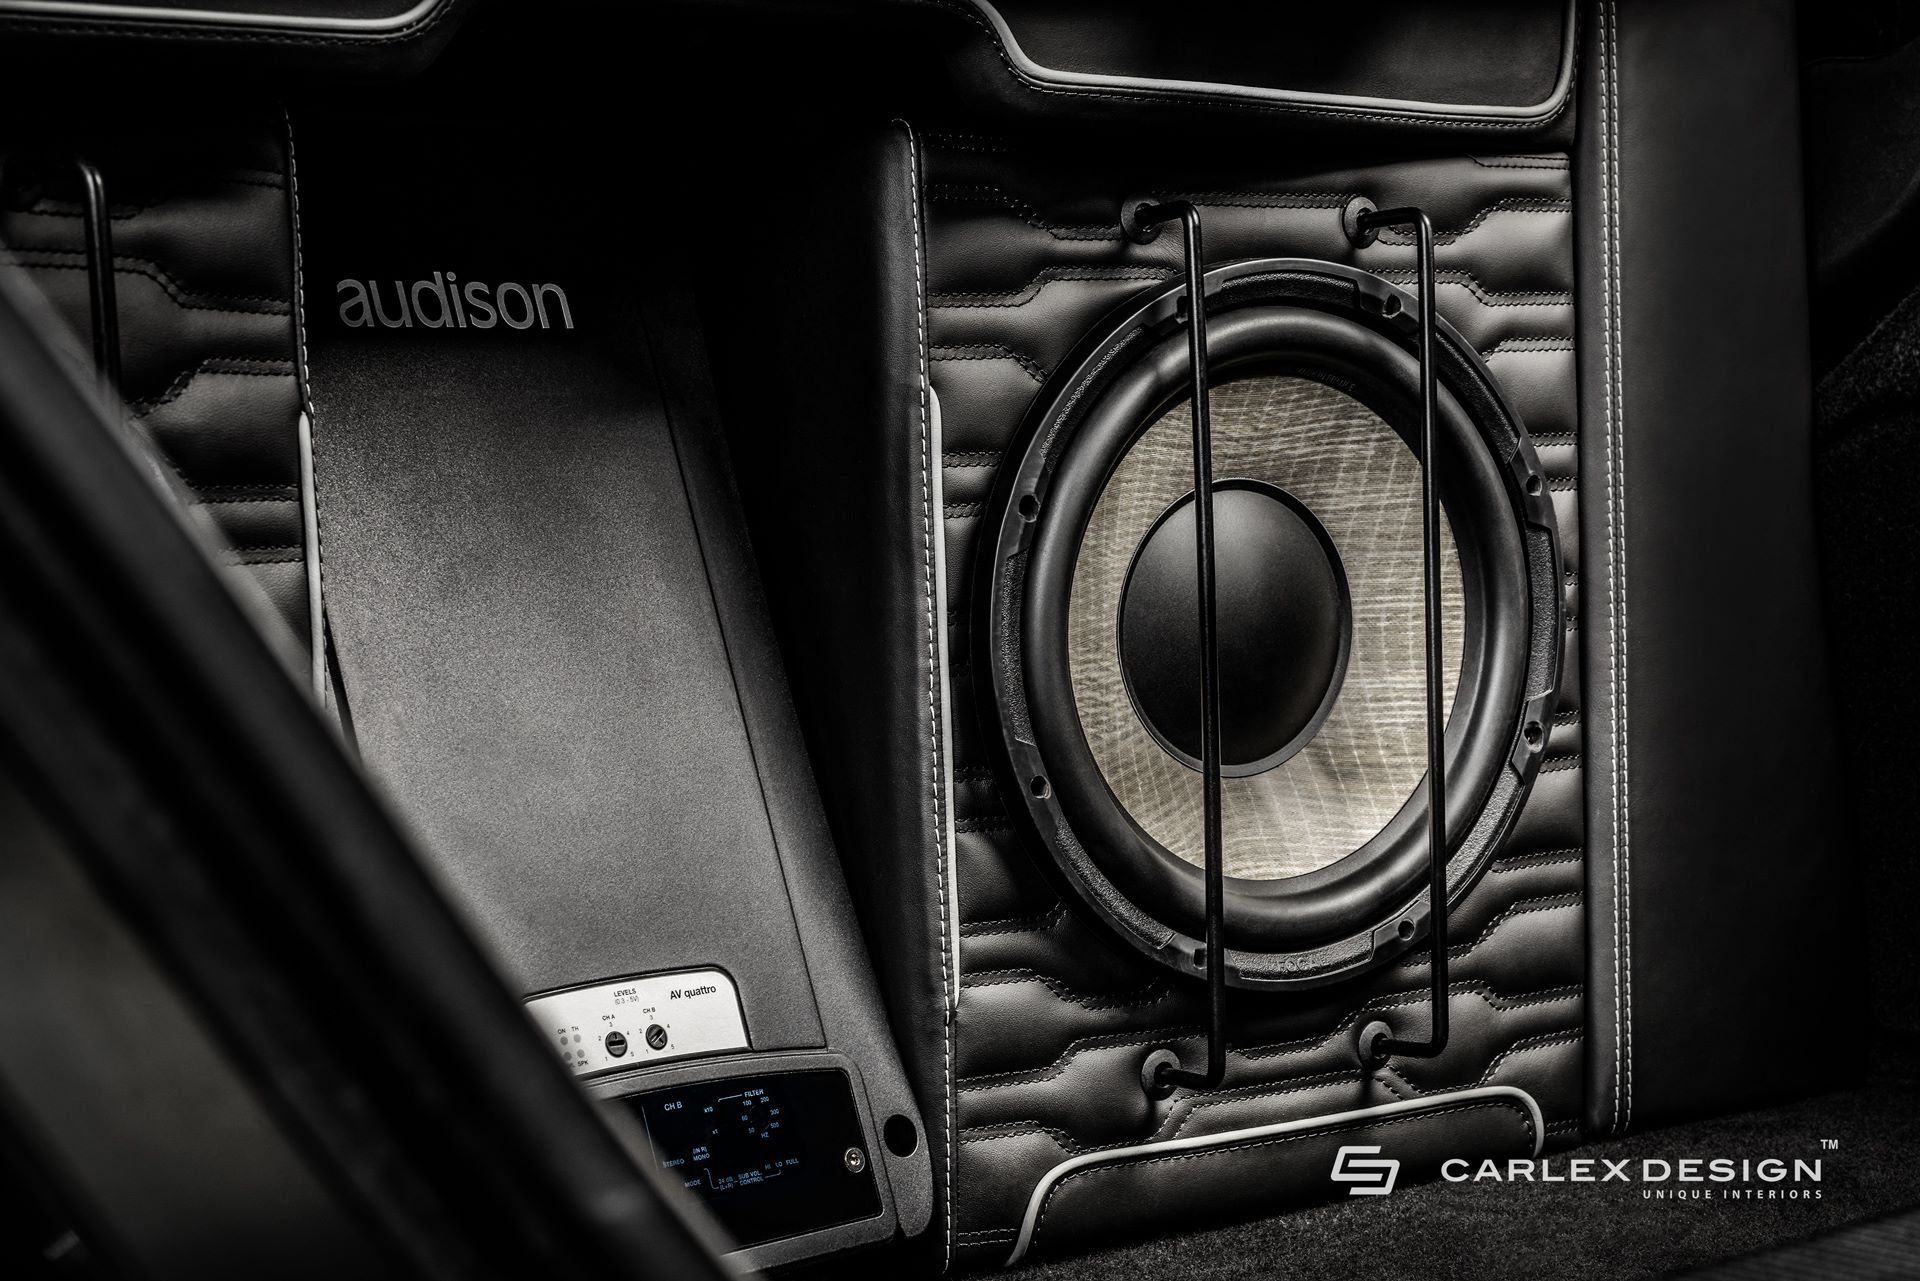 Mercedes-AMG C63 Gets Tuned by Carlex, Shows W204 Generation Is